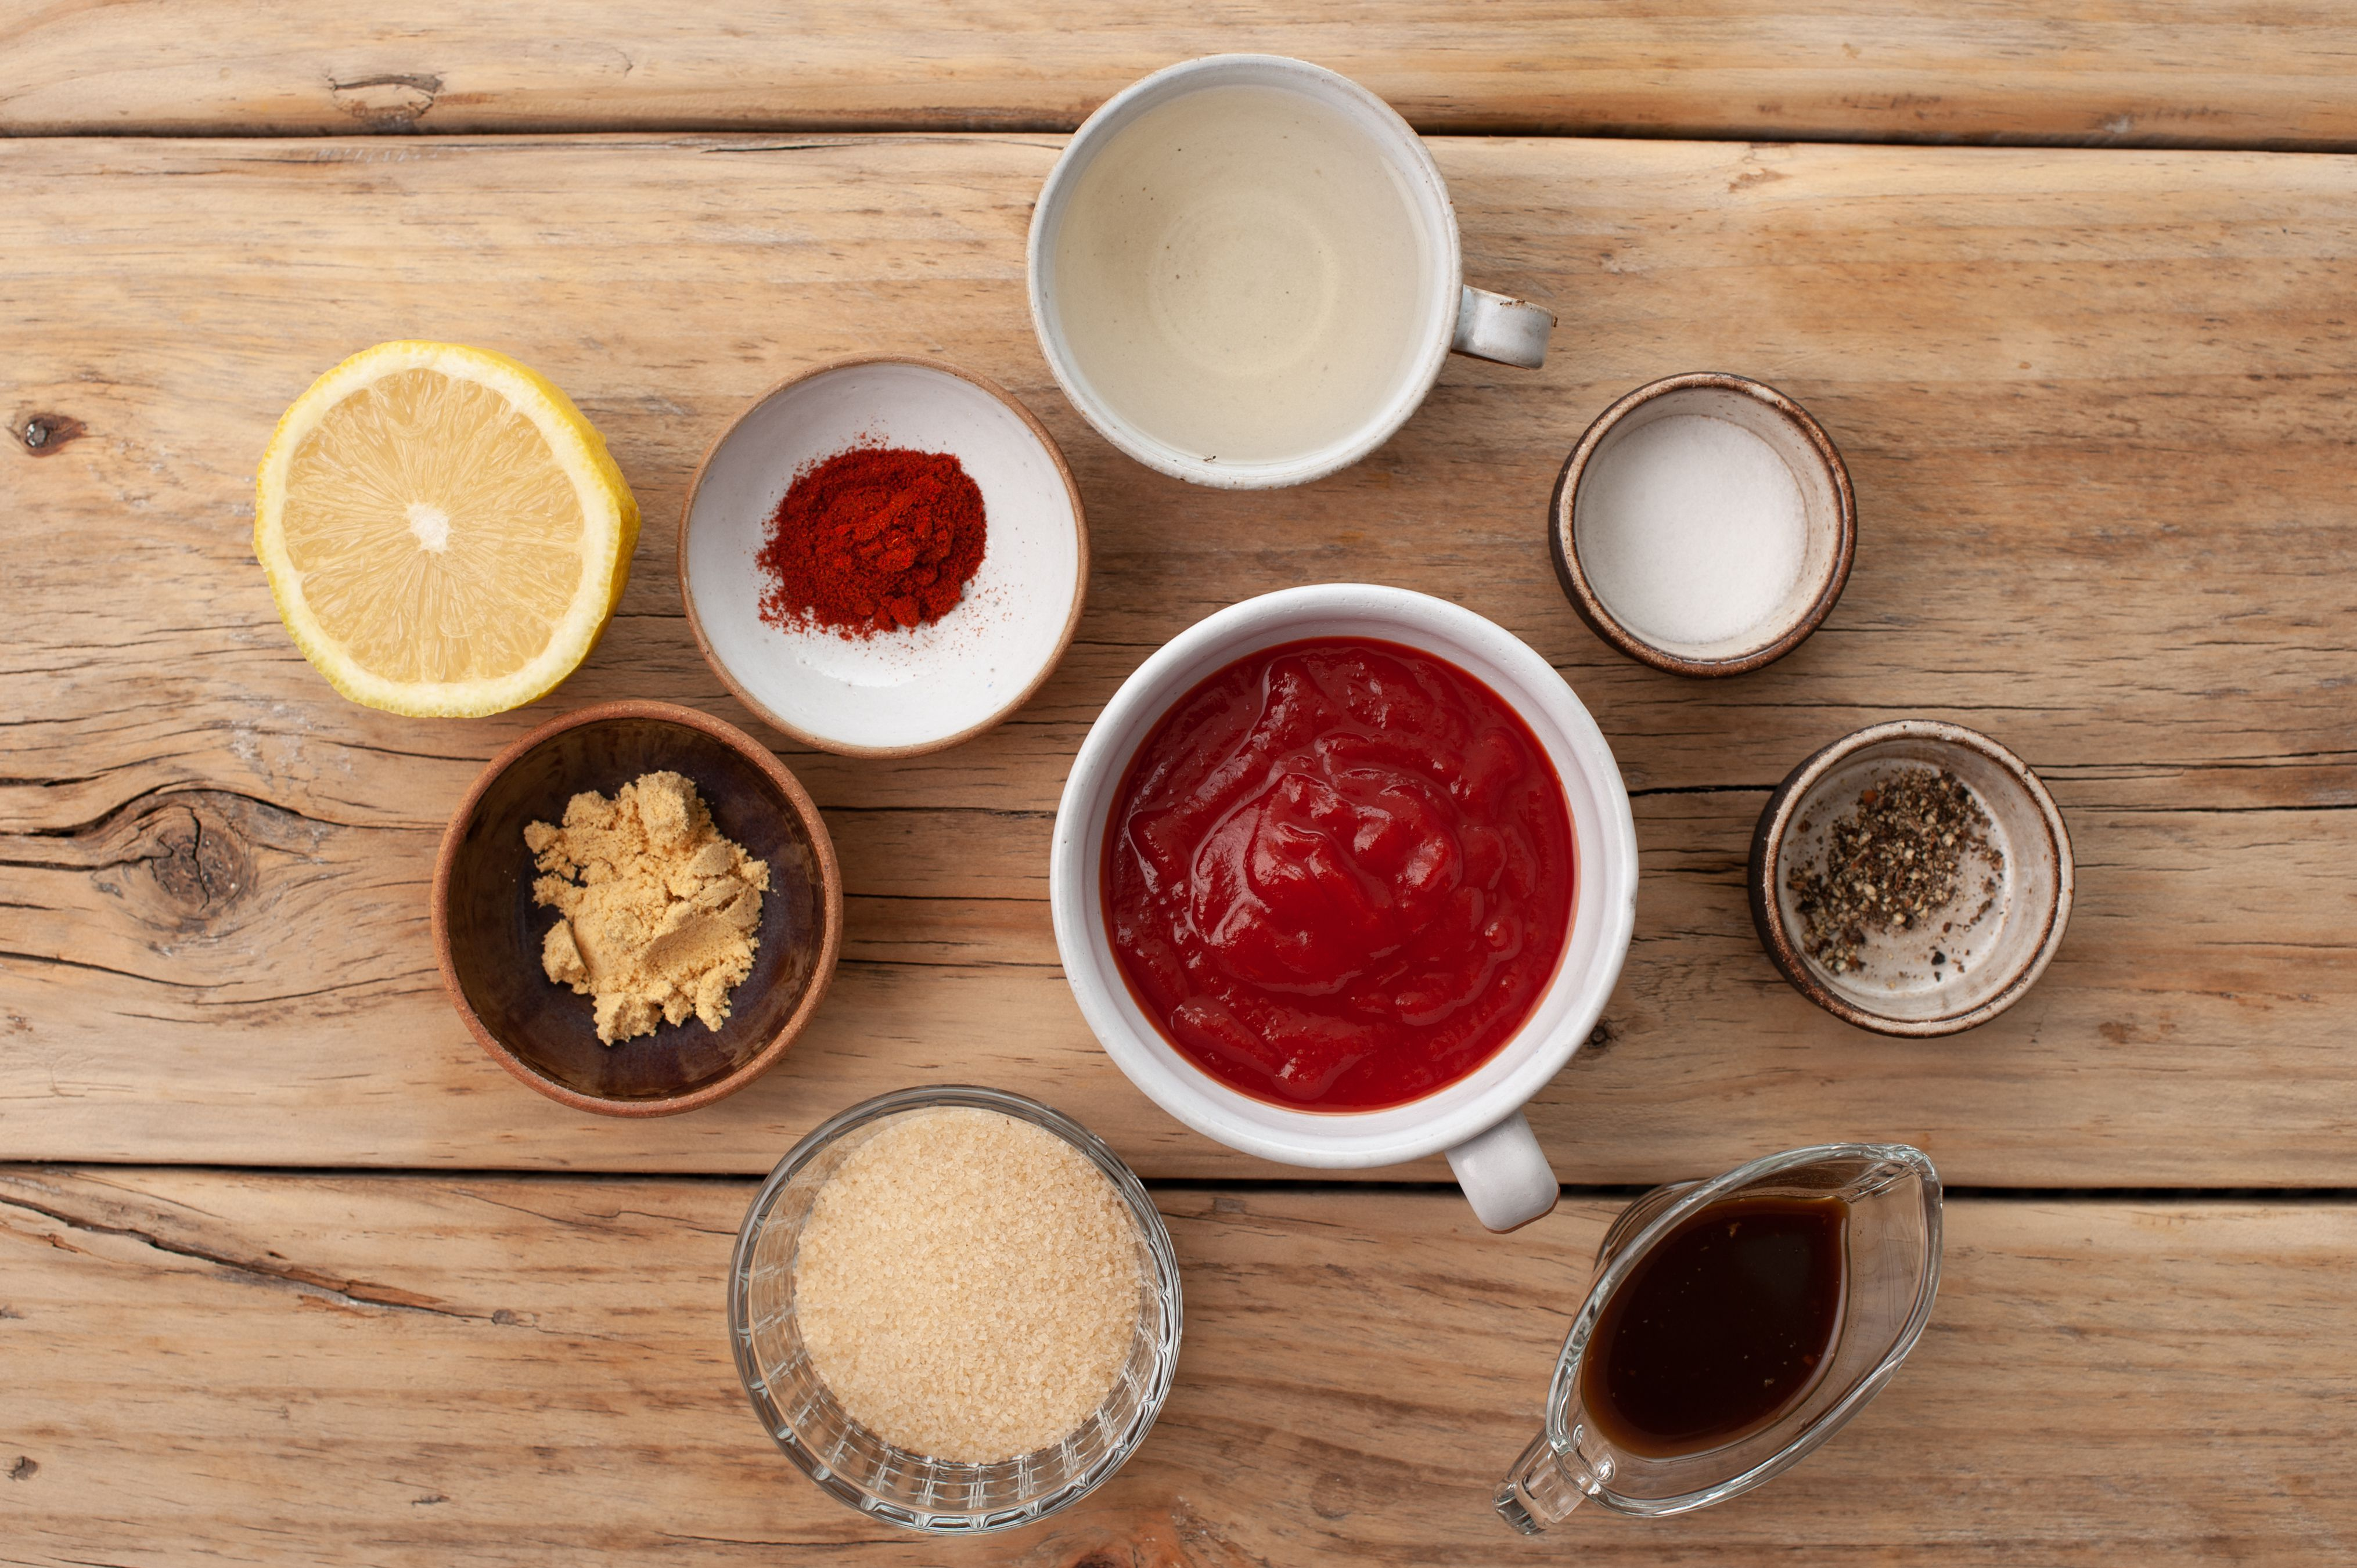 Ingredients for bbq sauce